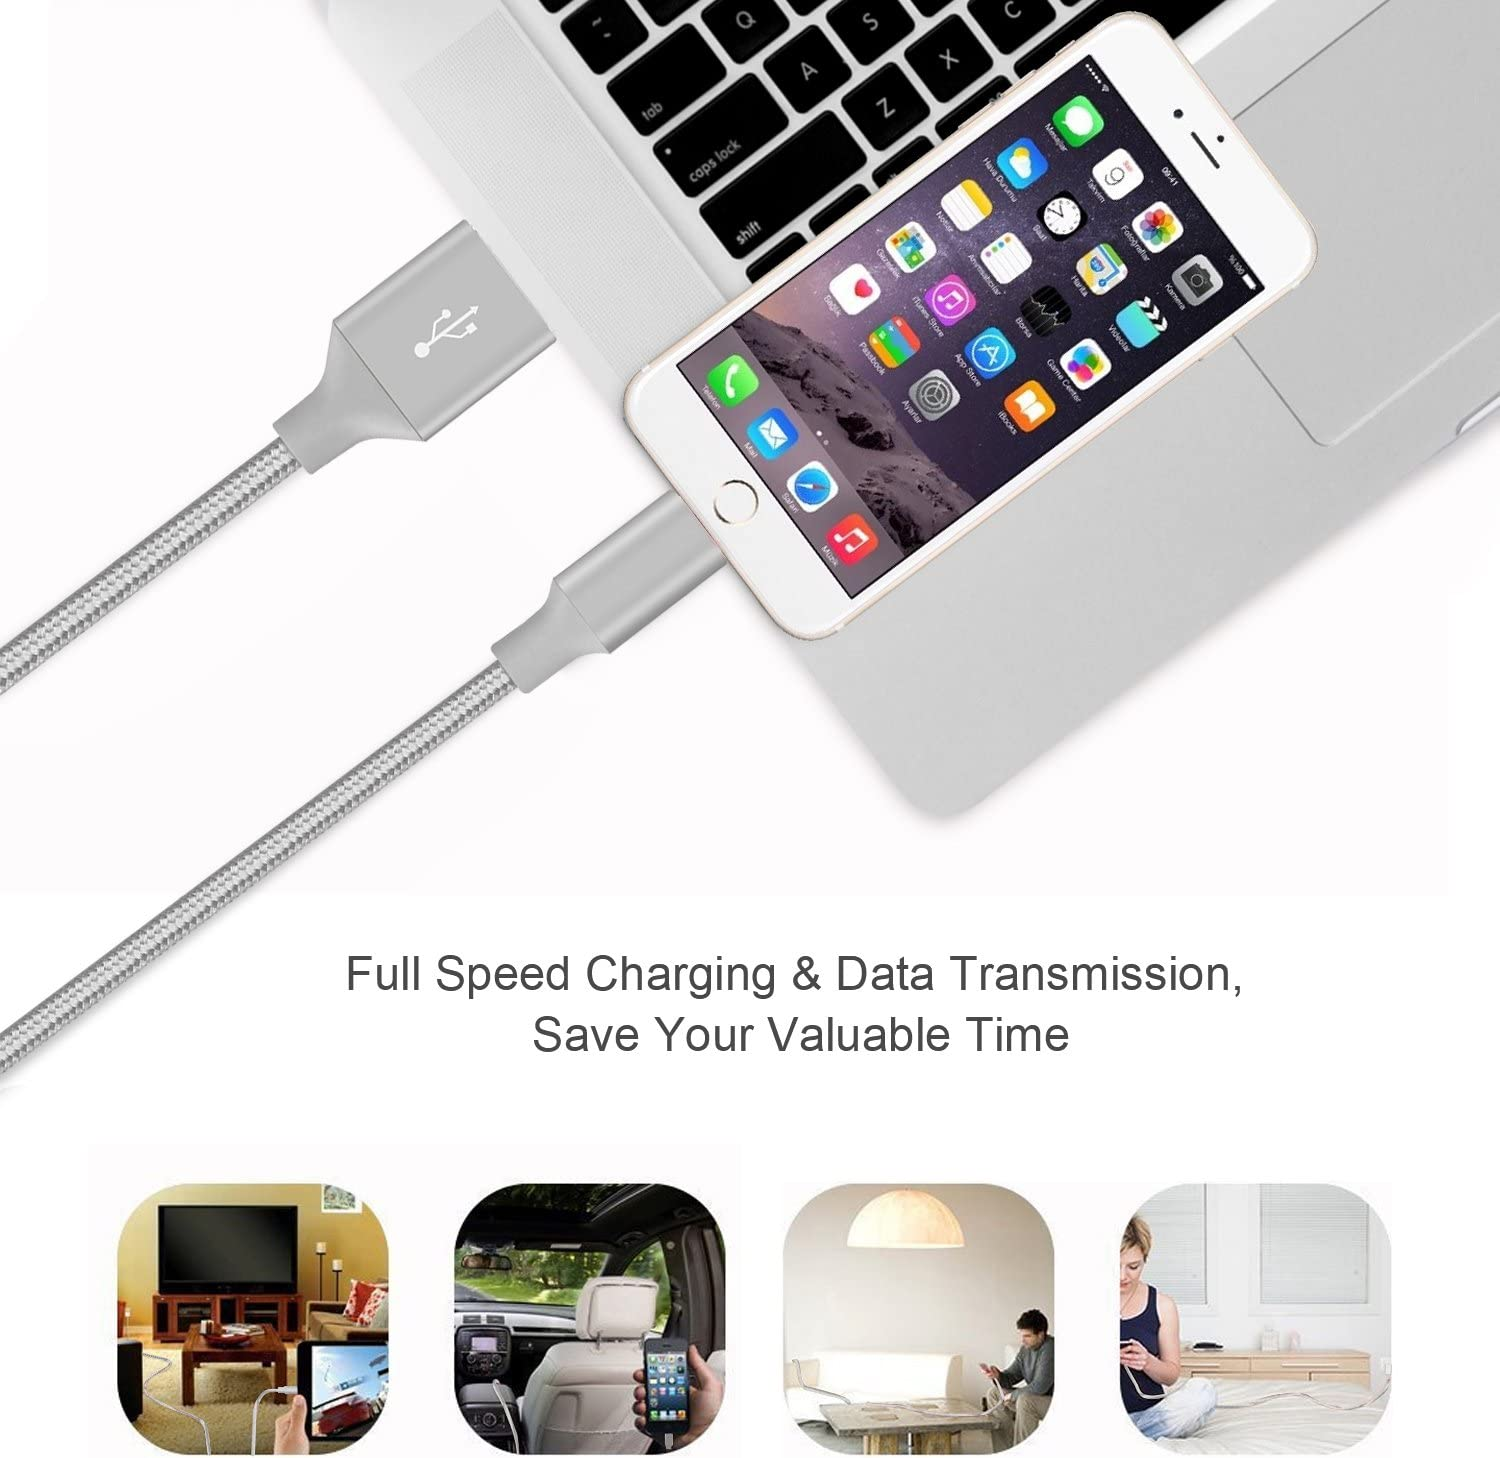 Gray MarchPower iPhone charger Lightning to USB Cord Certified 2 Pack 10ft Extra Long Charging Cable For iPhone X 8 Plus 7 Plus 6 6S 6 Plus 5S SE iPod iPad Mini Air Pro and More